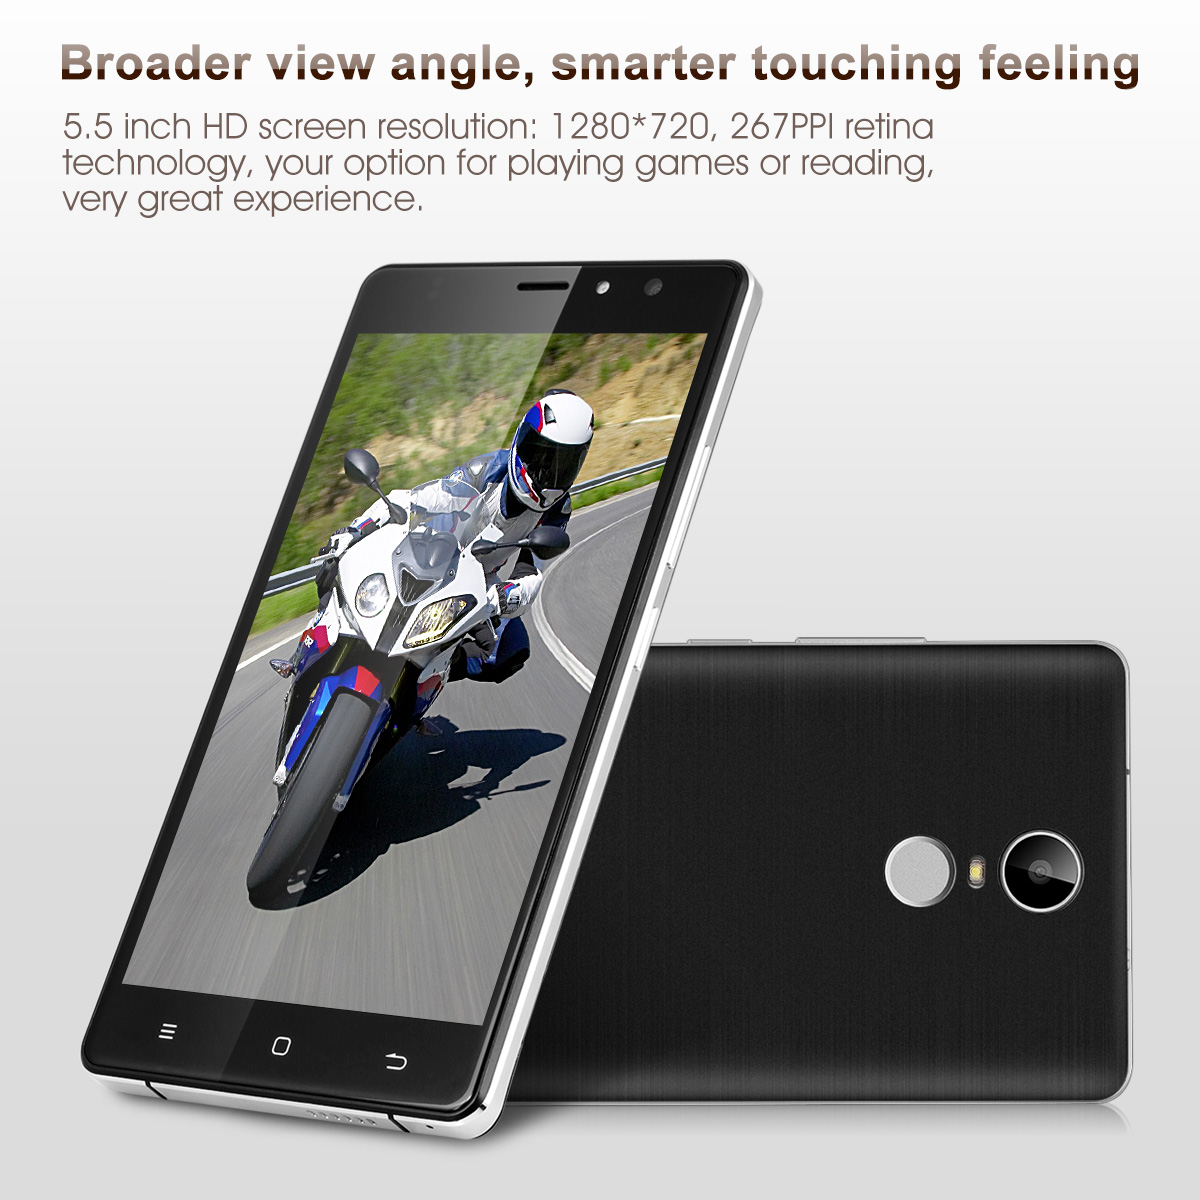 TIMMY M20 Pro IPS 4G LTE Smartphone Android 6.0 MTK6737 1.3GHz Quad Core Mobile Phone Touch ID Dual SIM 1GB RAM 16GB ROM 5MP Back Camara Cellphone Smart Gestures